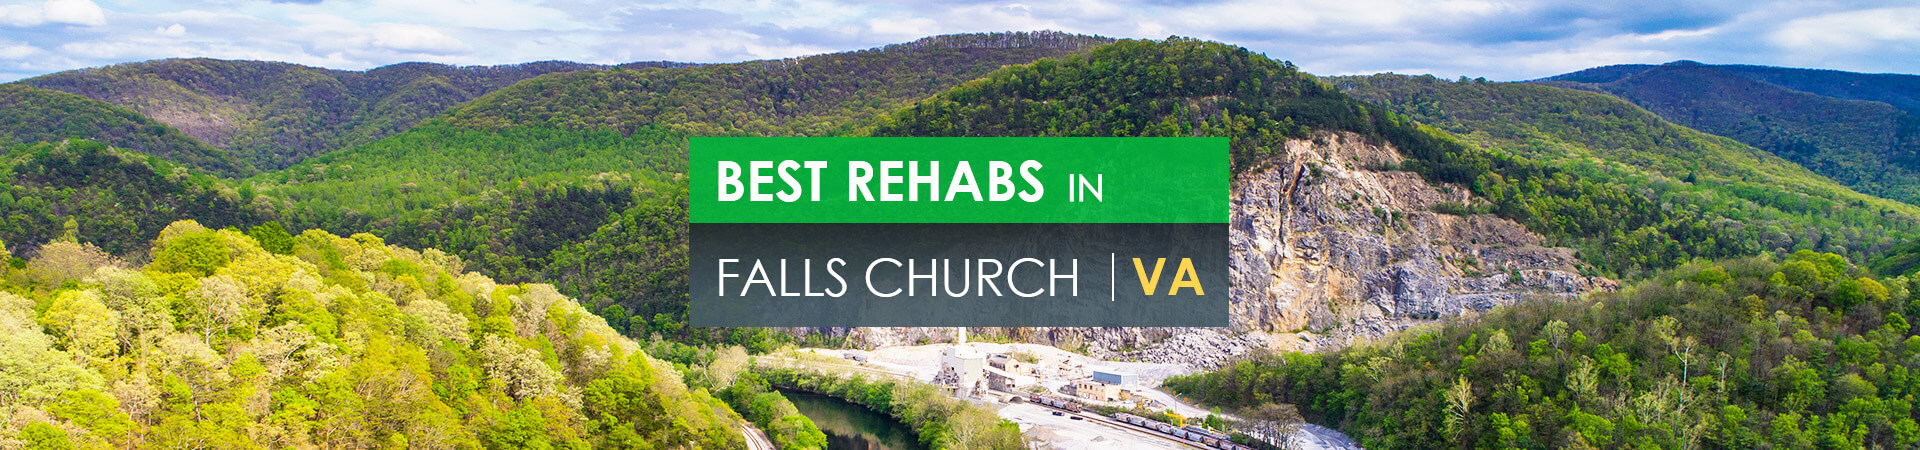 Best rehabs in Falls Church, VA